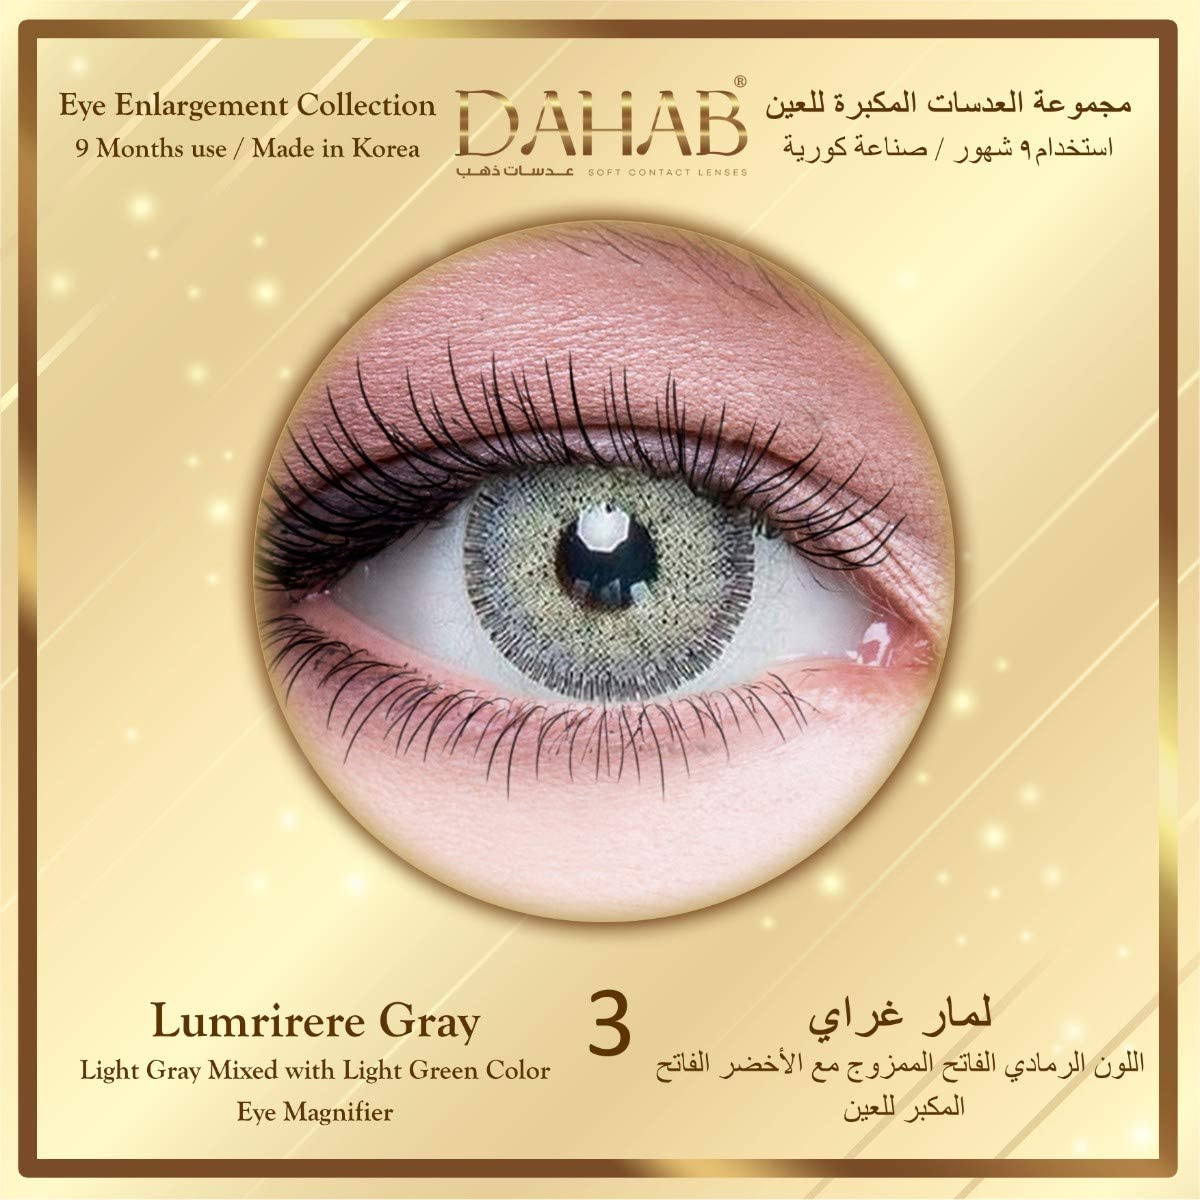 Dahab Lumirere Gray Contact Lenses, Unisex Dahab Cosmetic Contact Lenses, Nine Months Disposable- Eye Enlargement Collection, Lumirere Gray Color